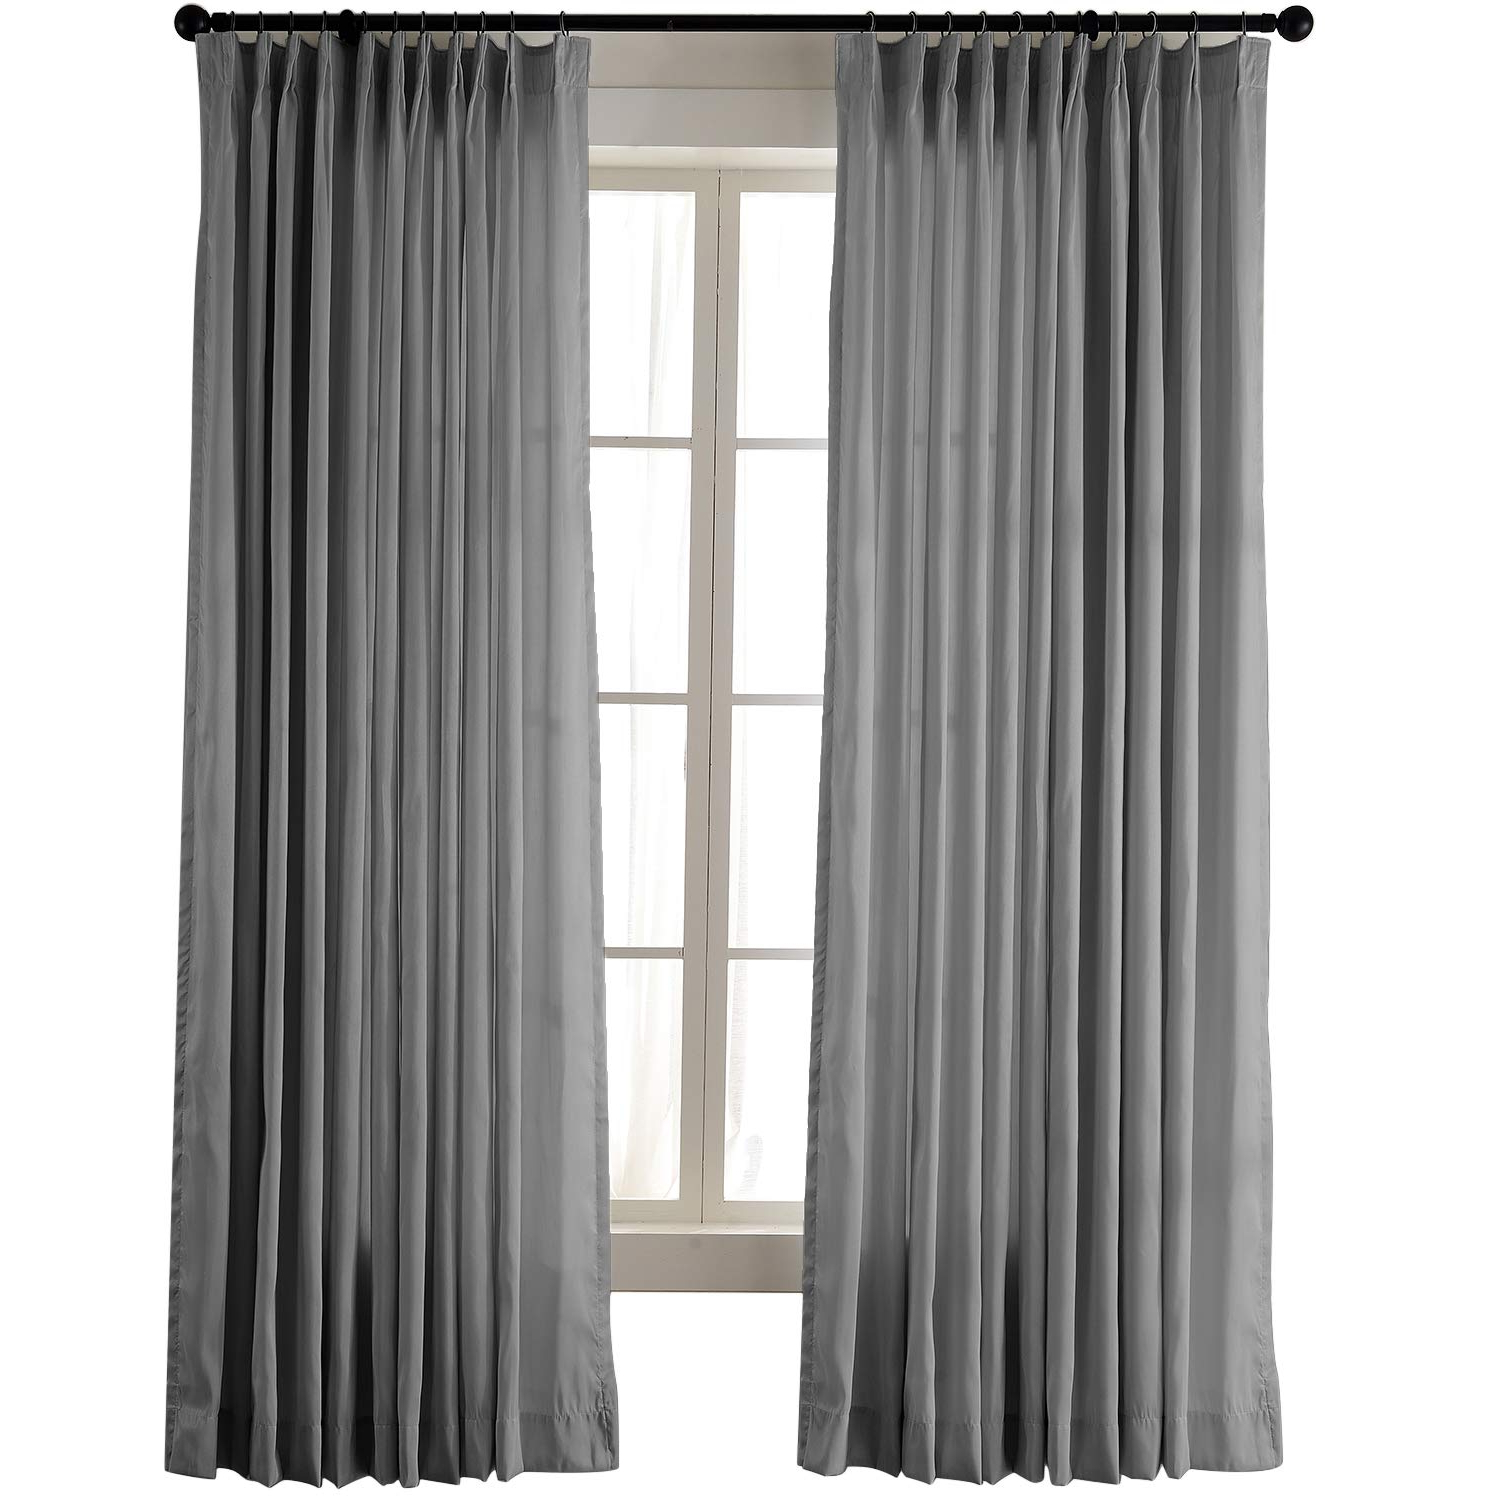 "Favorite Chadmade Vintage Textured Faux Dupioni Silk Drape Curtain Panel Pinch  Pleated 72"" W X 72"" L With White Blackout Lined, Silver Grey With Regard To Silver Vintage Faux Textured Silk Curtain Panels (View 5 of 20)"